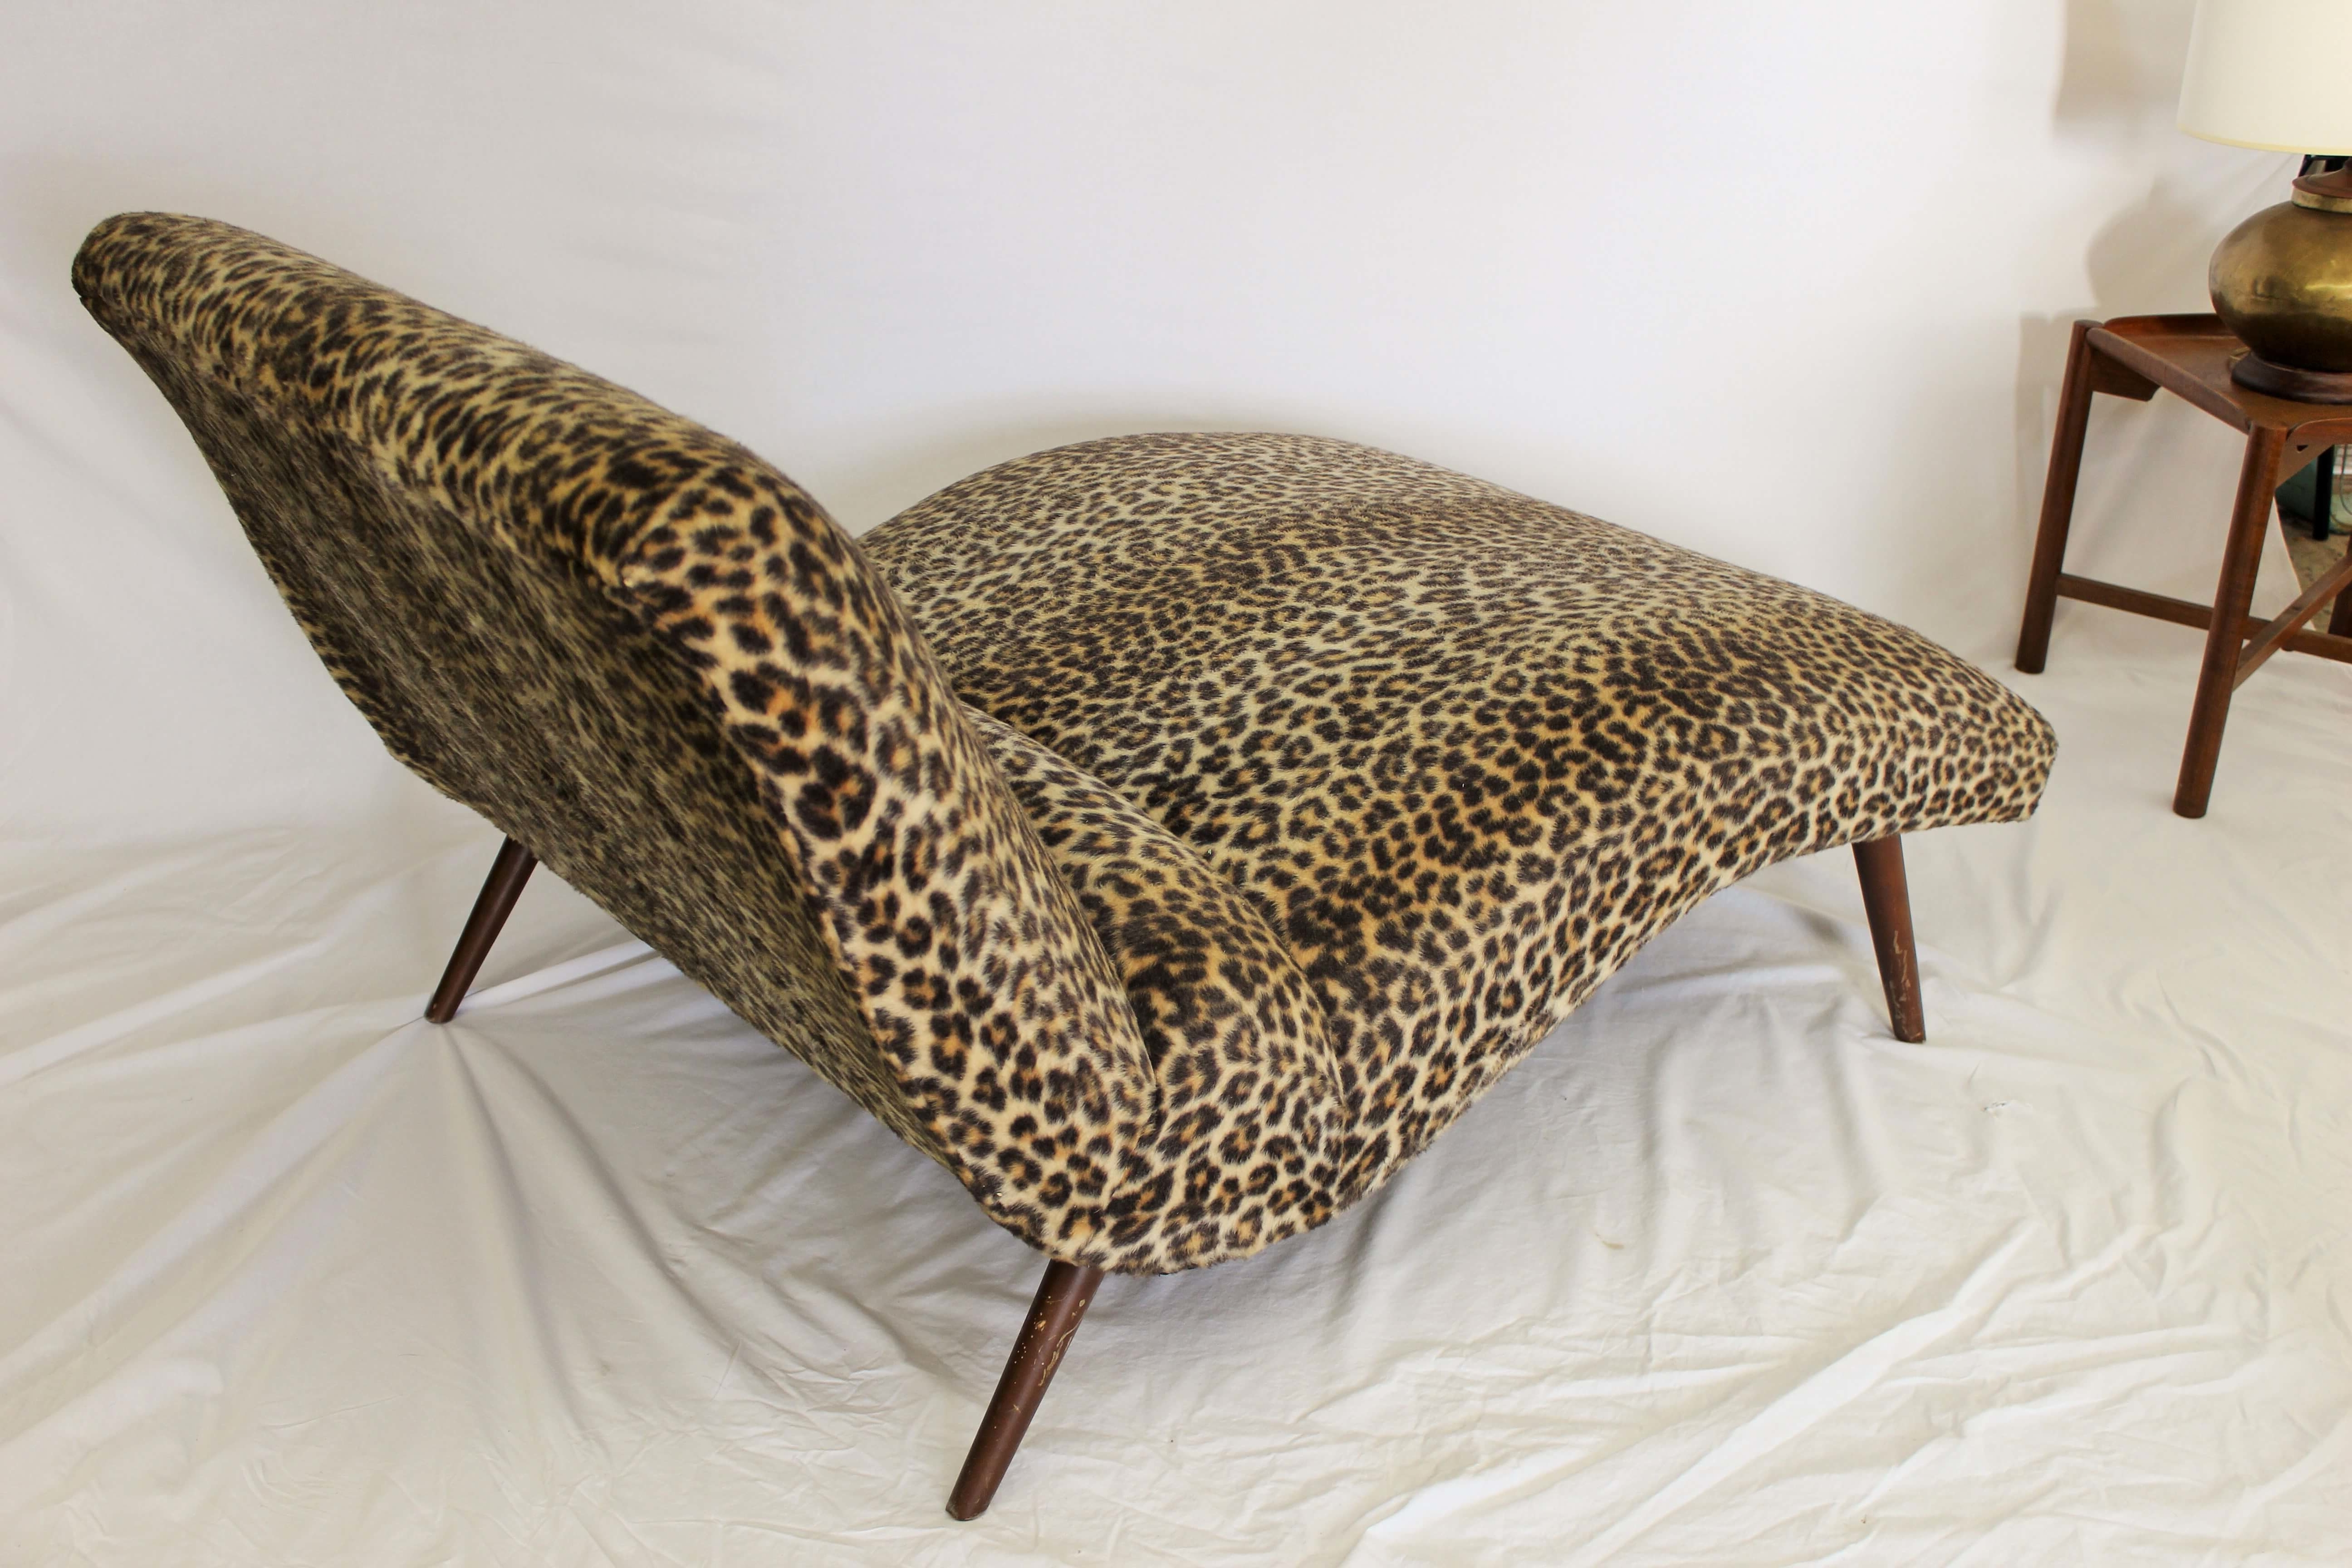 Leopard Chaises Regarding Widely Used Leopard Chaise Lounge – Leopard Chaise Lounge Chair Animal Print (View 9 of 15)